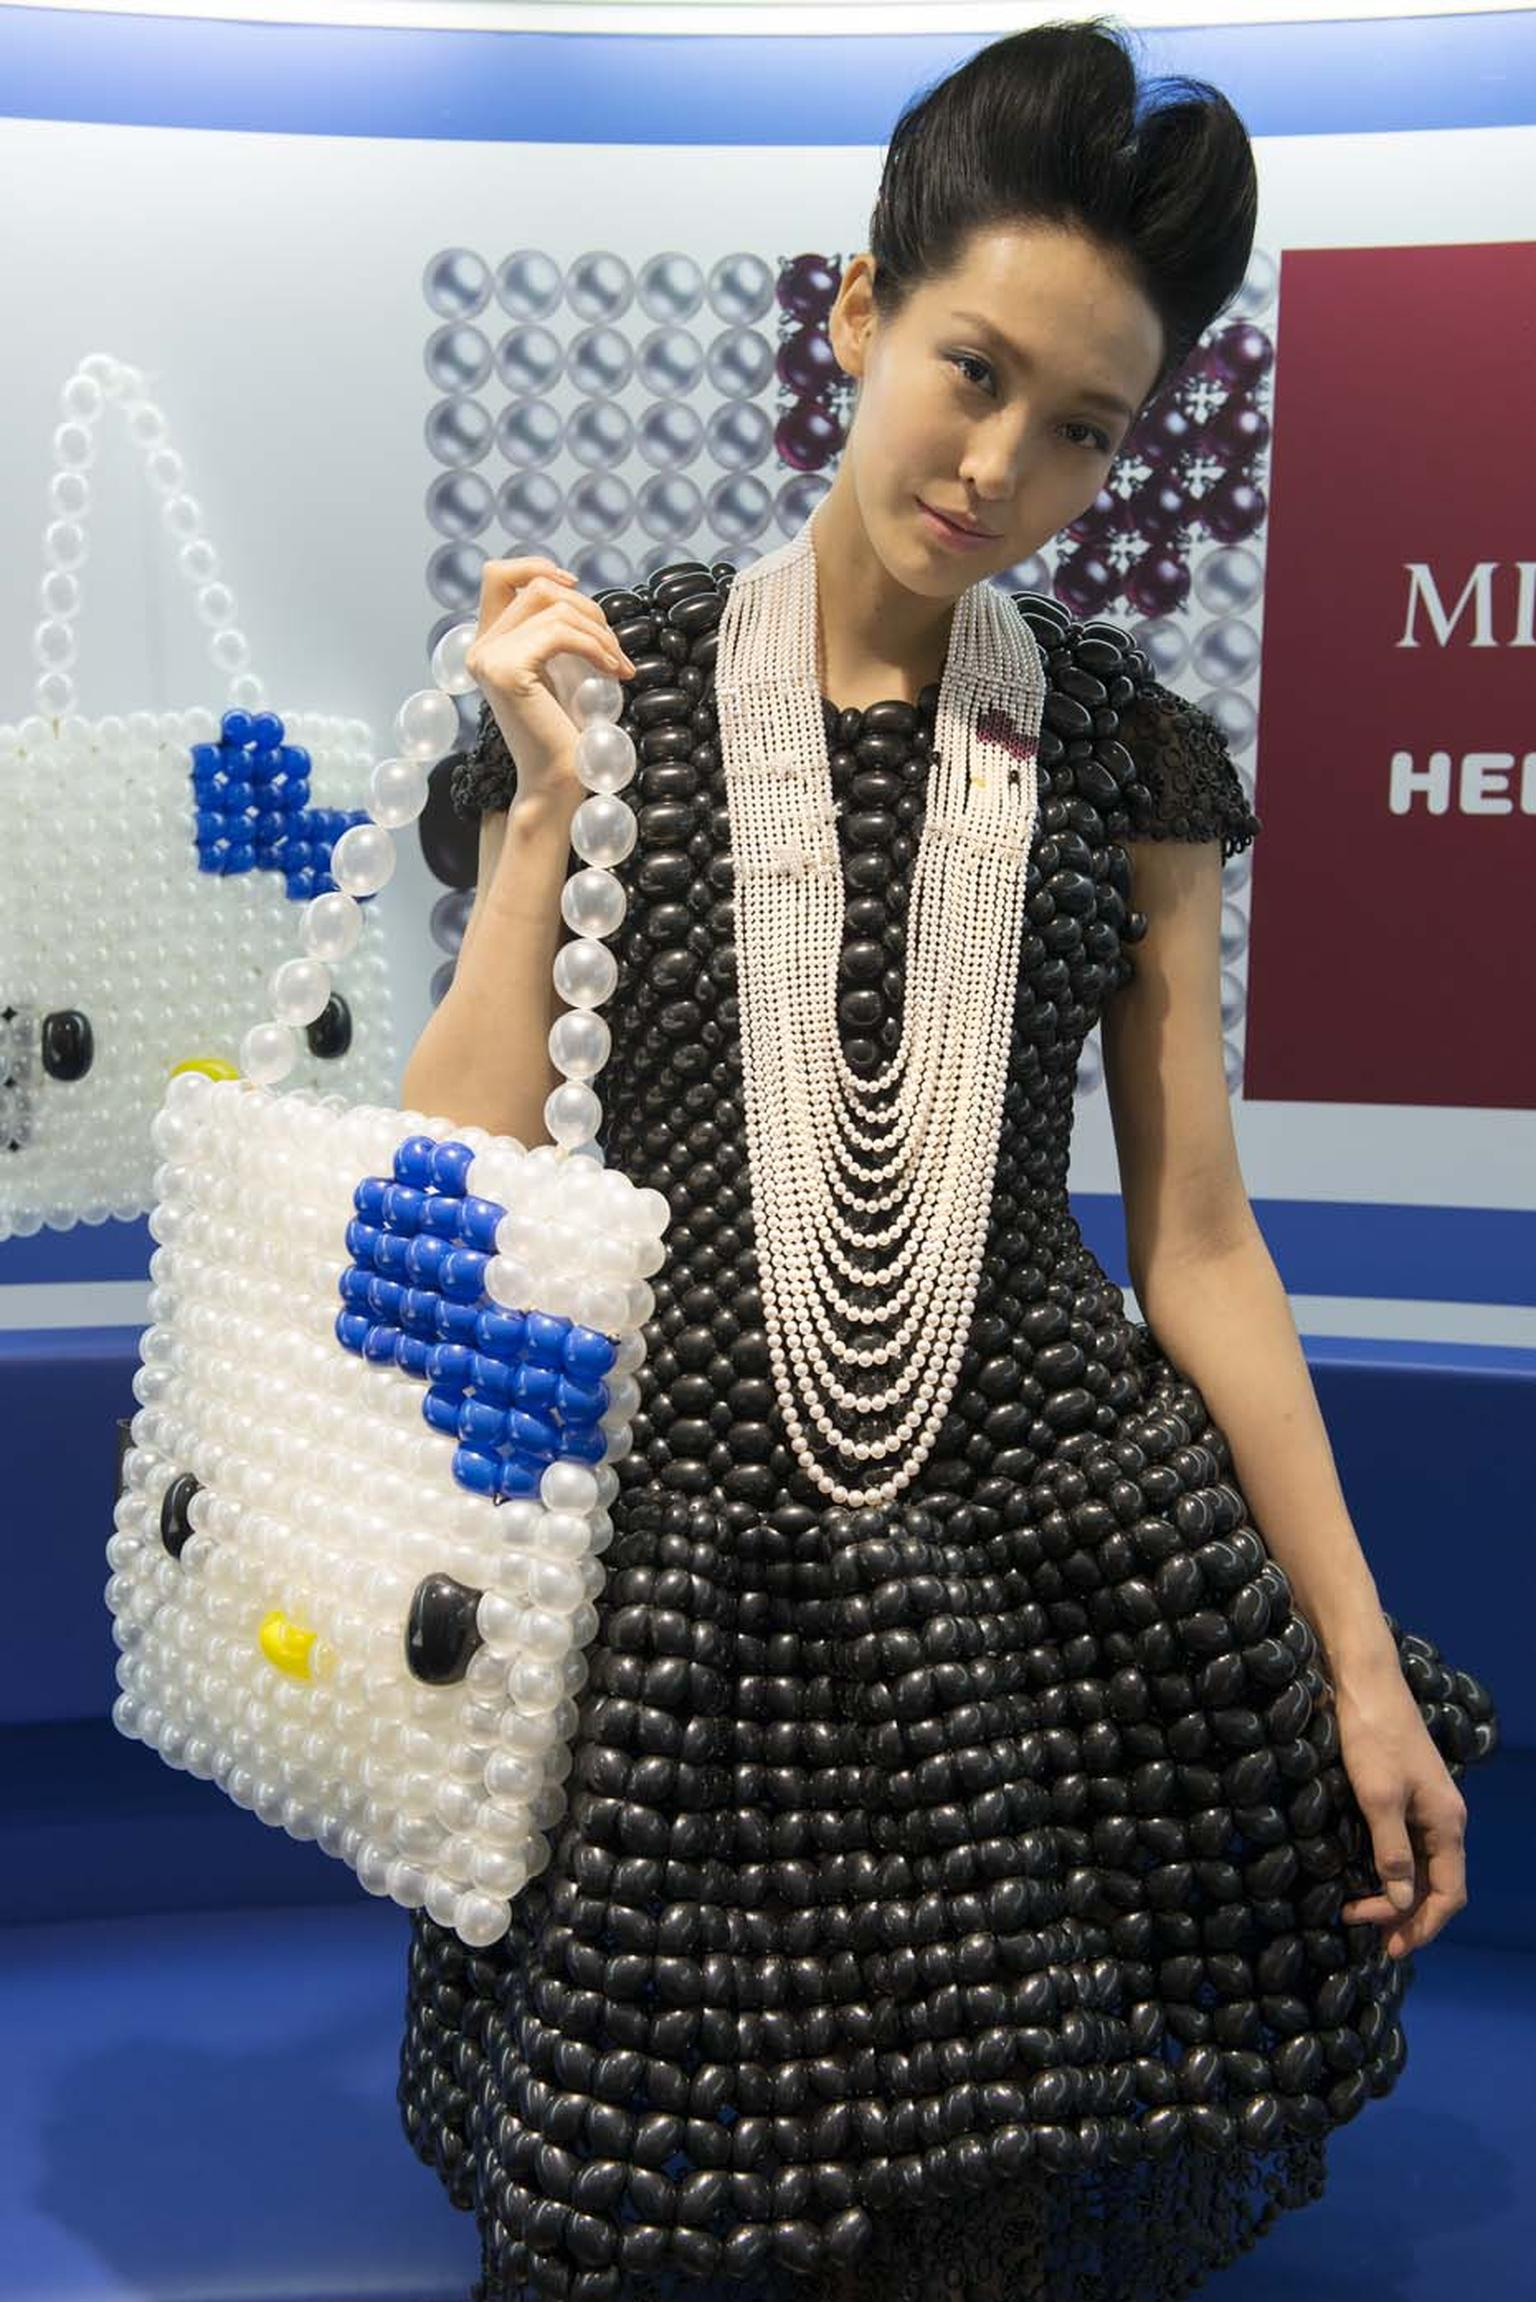 Mikimoto and Hello Kitty take centre stage at the launch of the Mikimoto x Hello Kitty collection at Colette in Paris